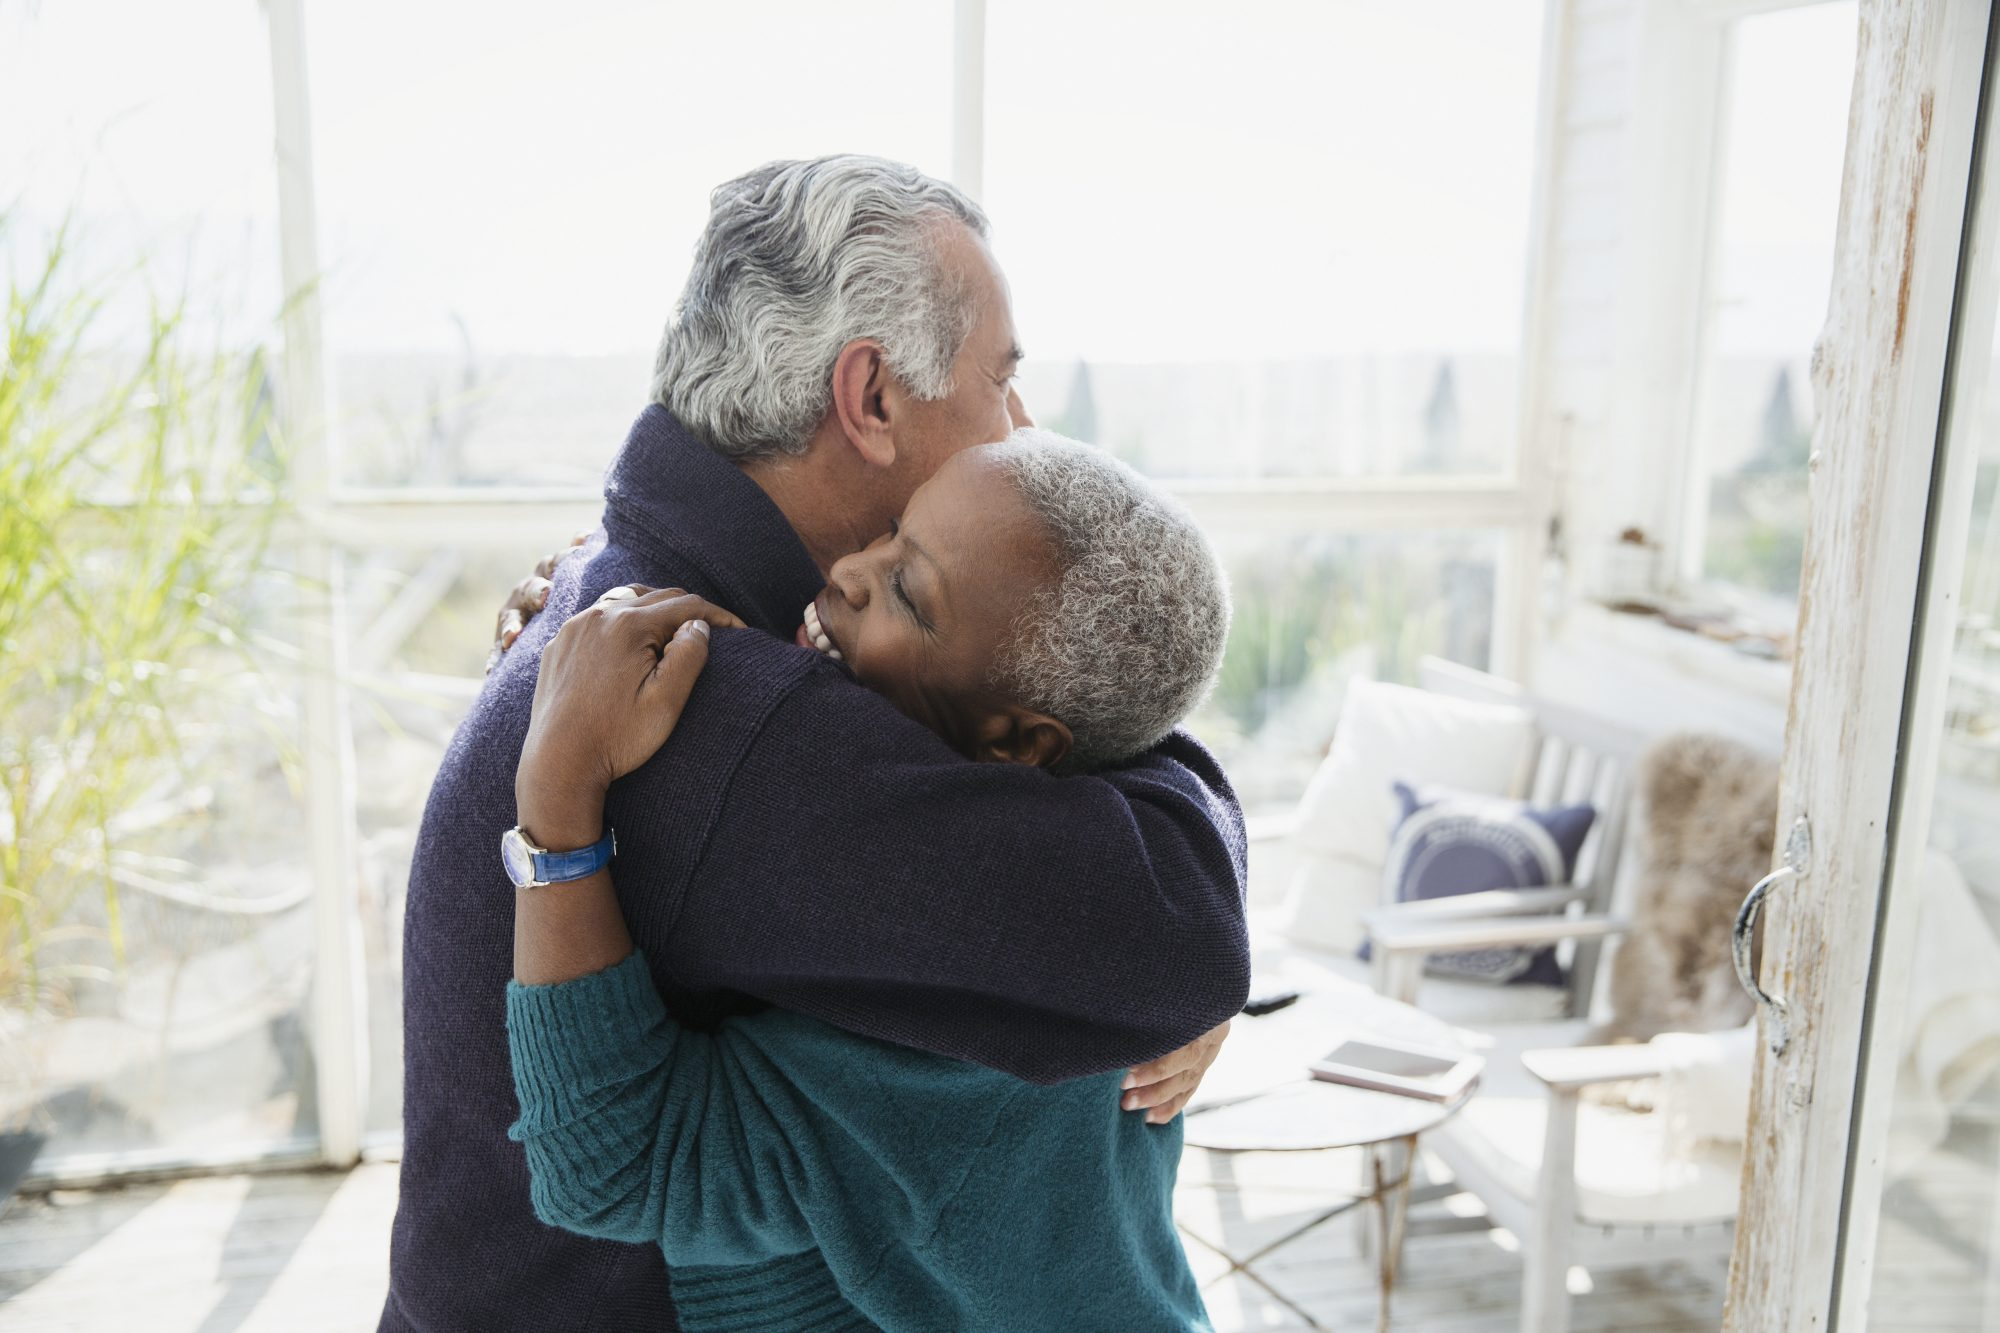 Hugs Can Improve Relationships After An Argument